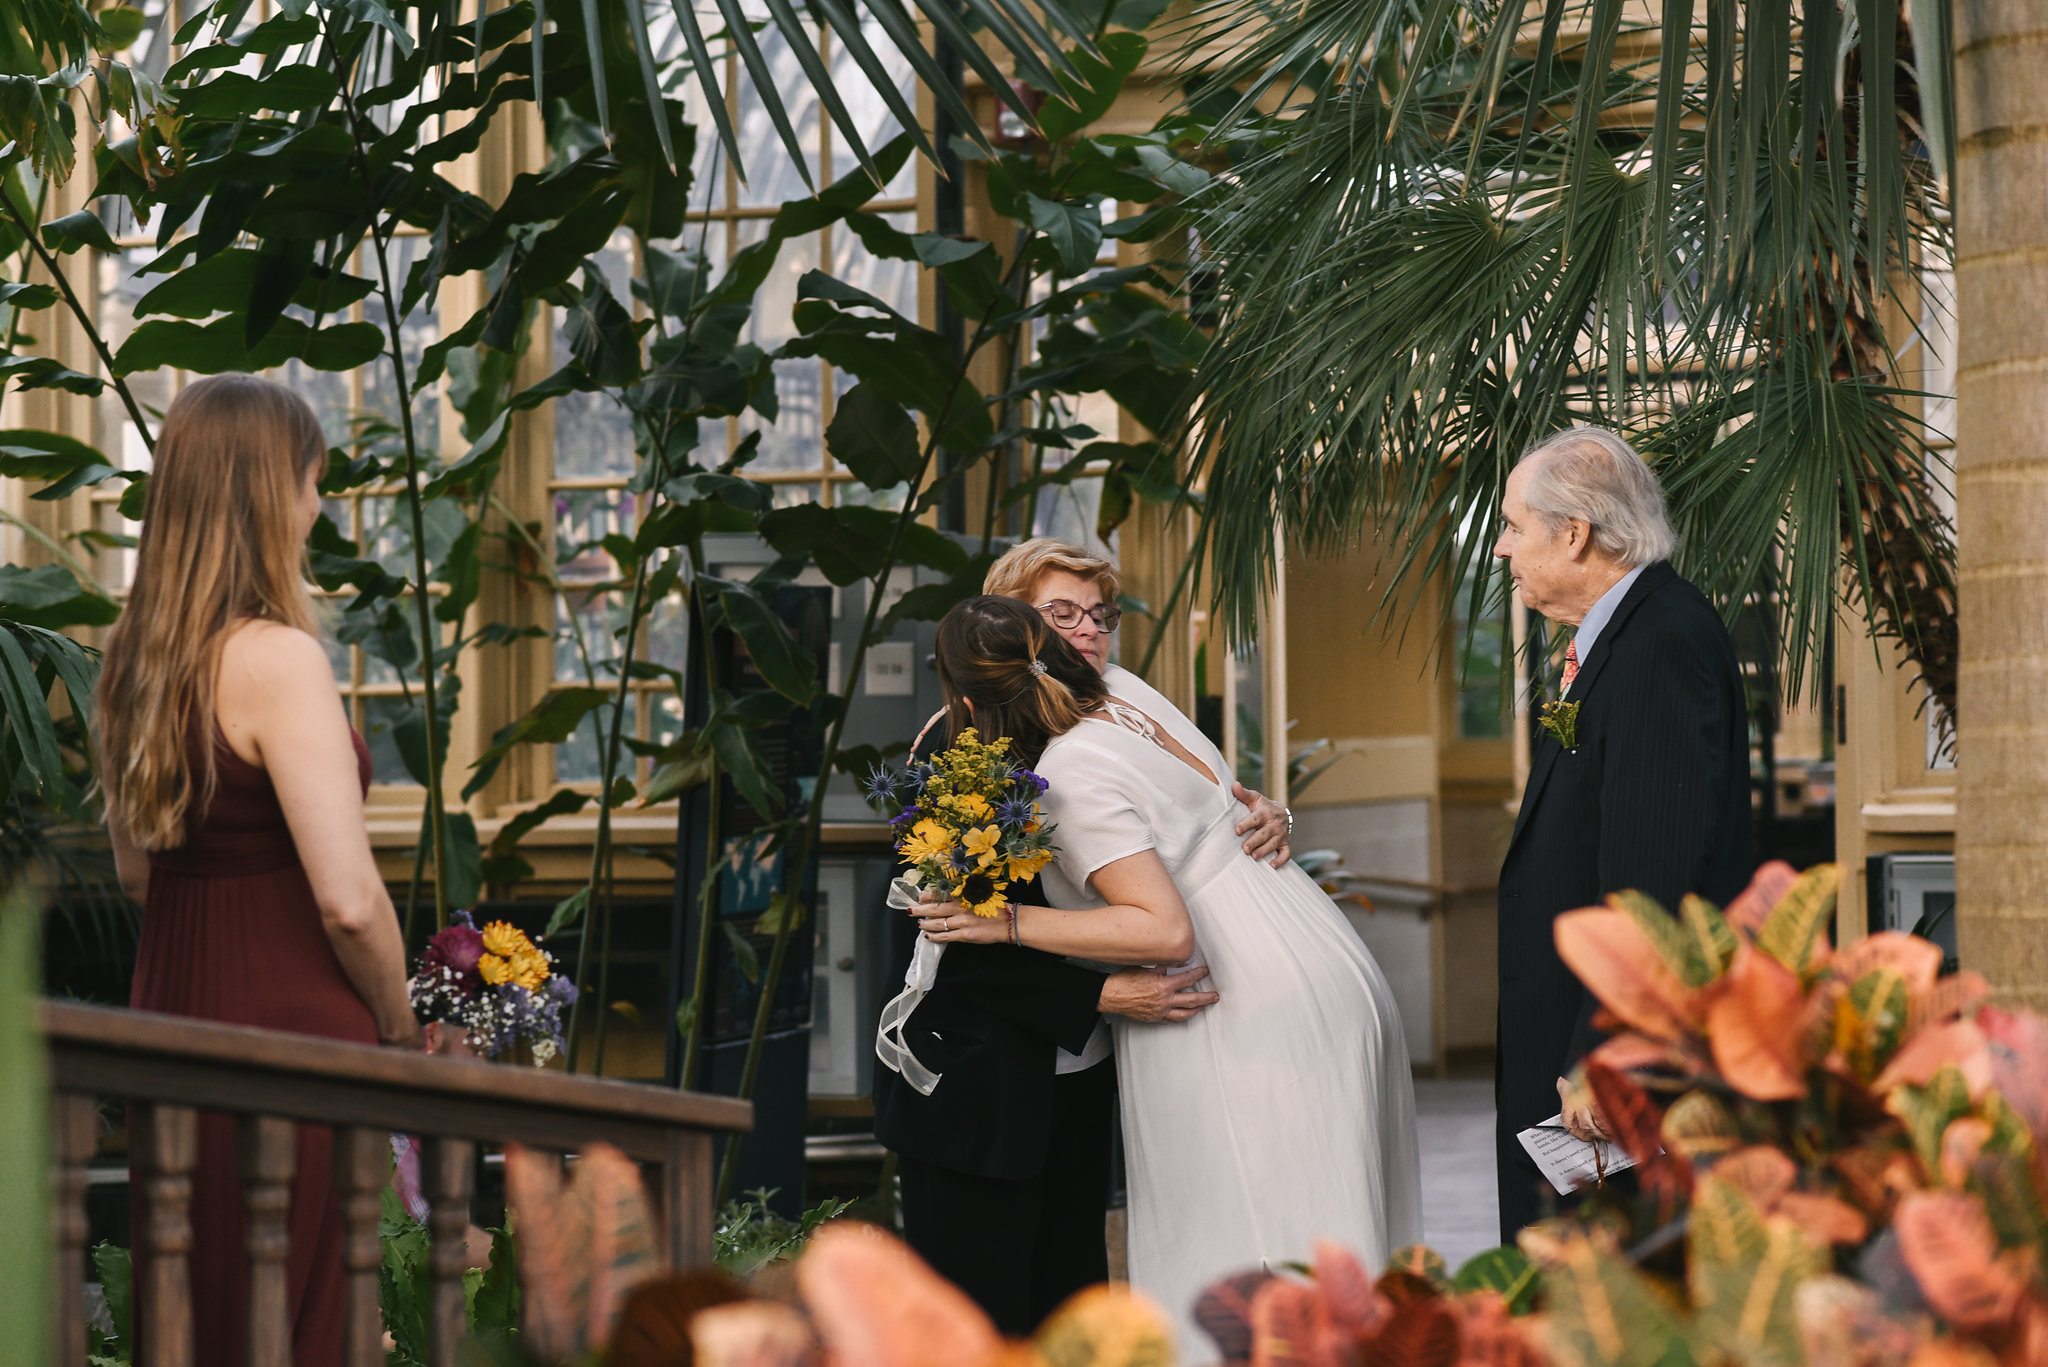 Rawlings Conservatory, Druid Hill Park, Intimate Wedding, Nature, Baltimore Wedding Photographer, Romantic, Classic, Bride Hugging Mother of the Bride Surrounded by Flowers